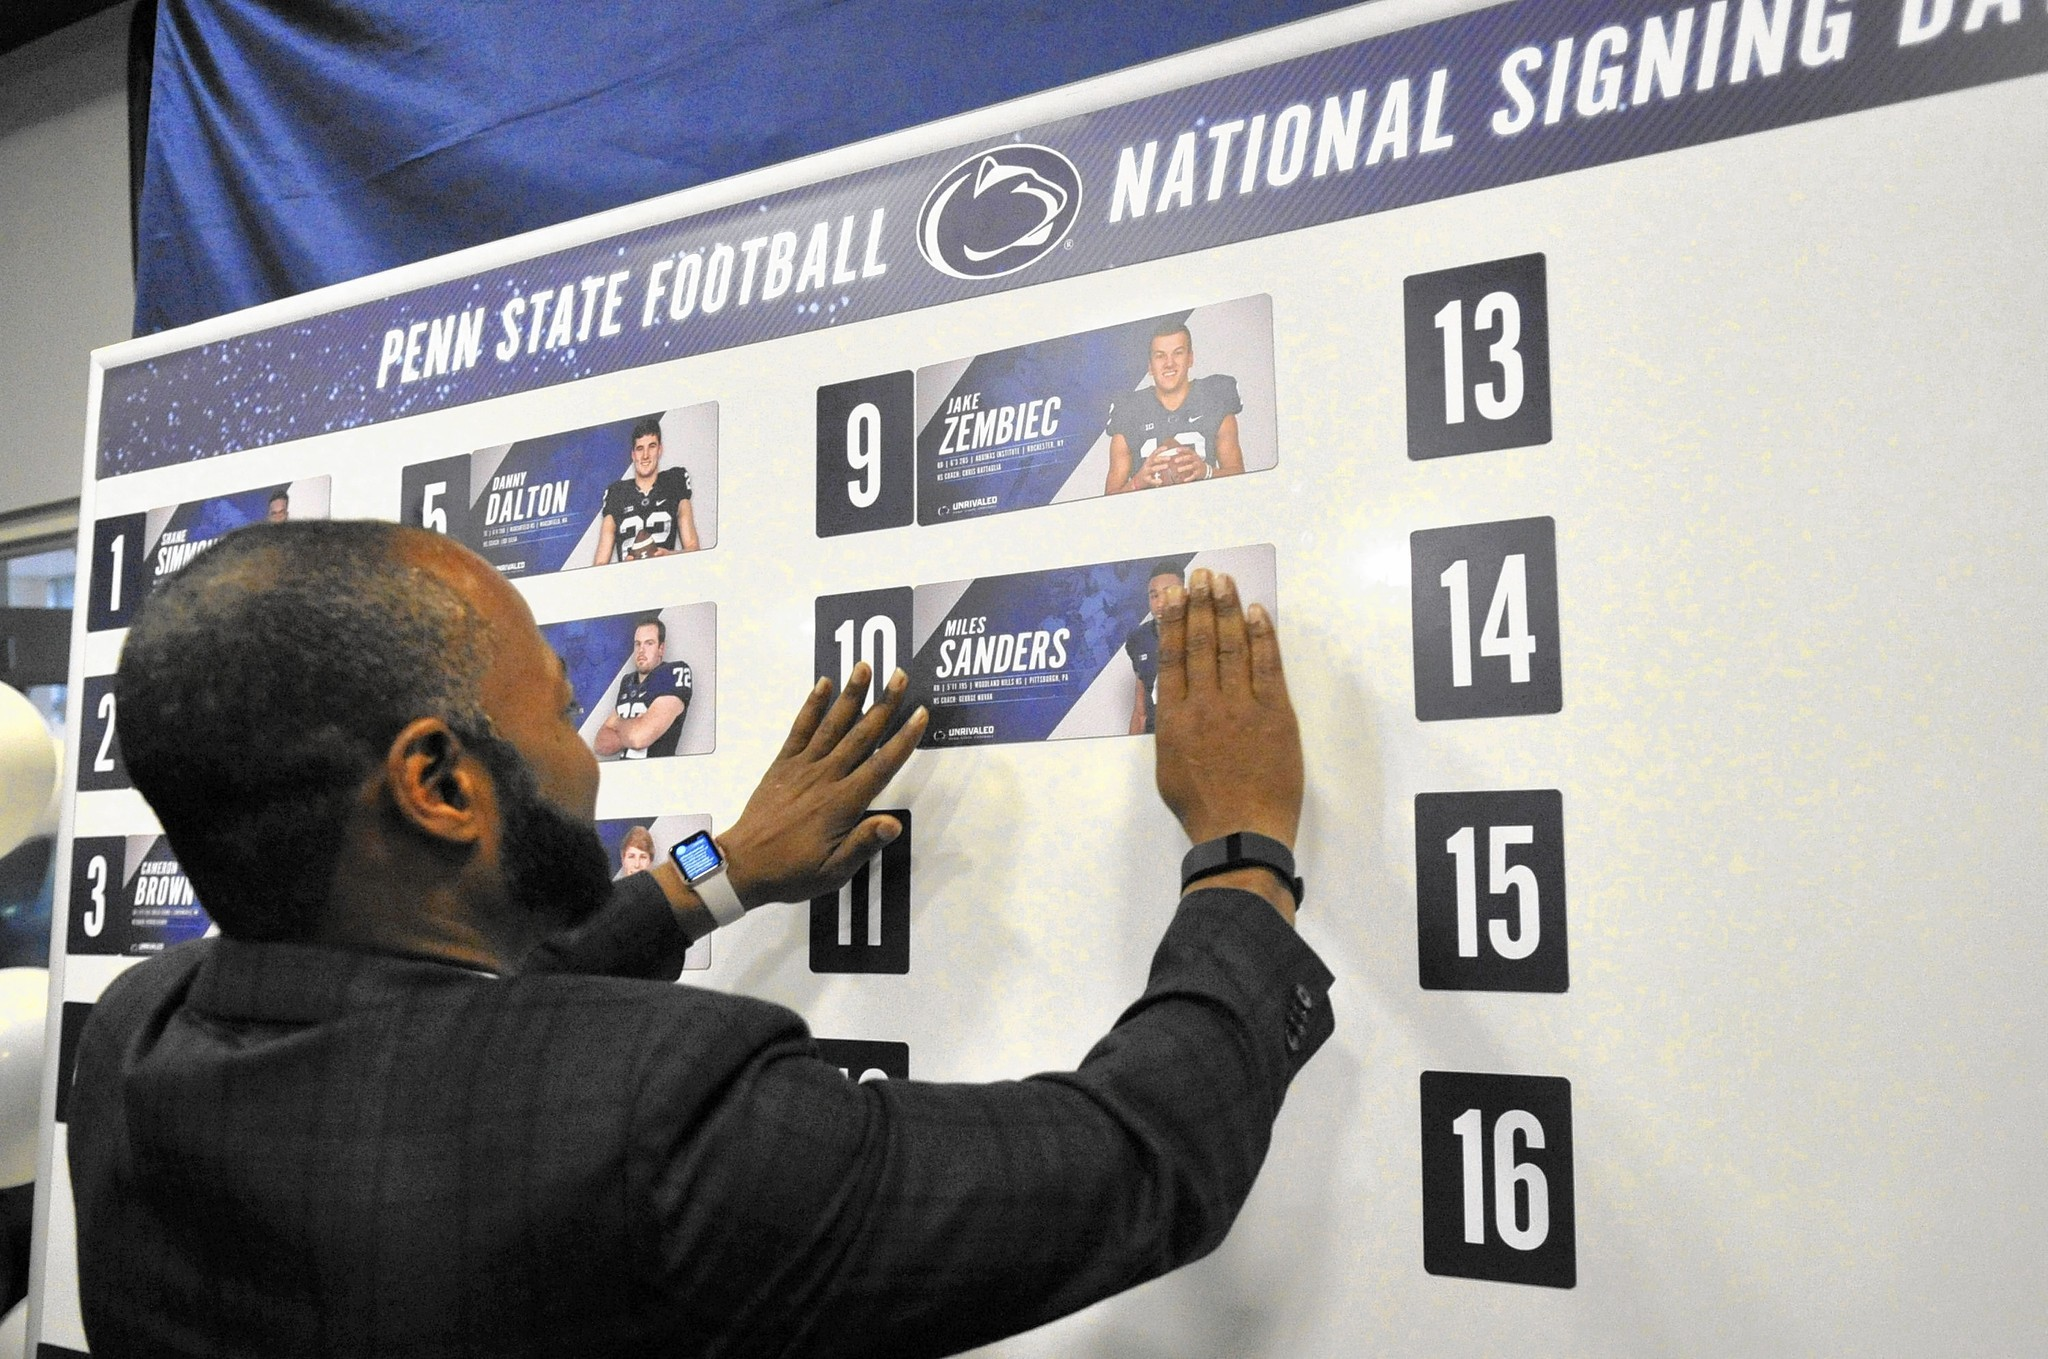 Mc-penn-state-football-signing-day-20160203